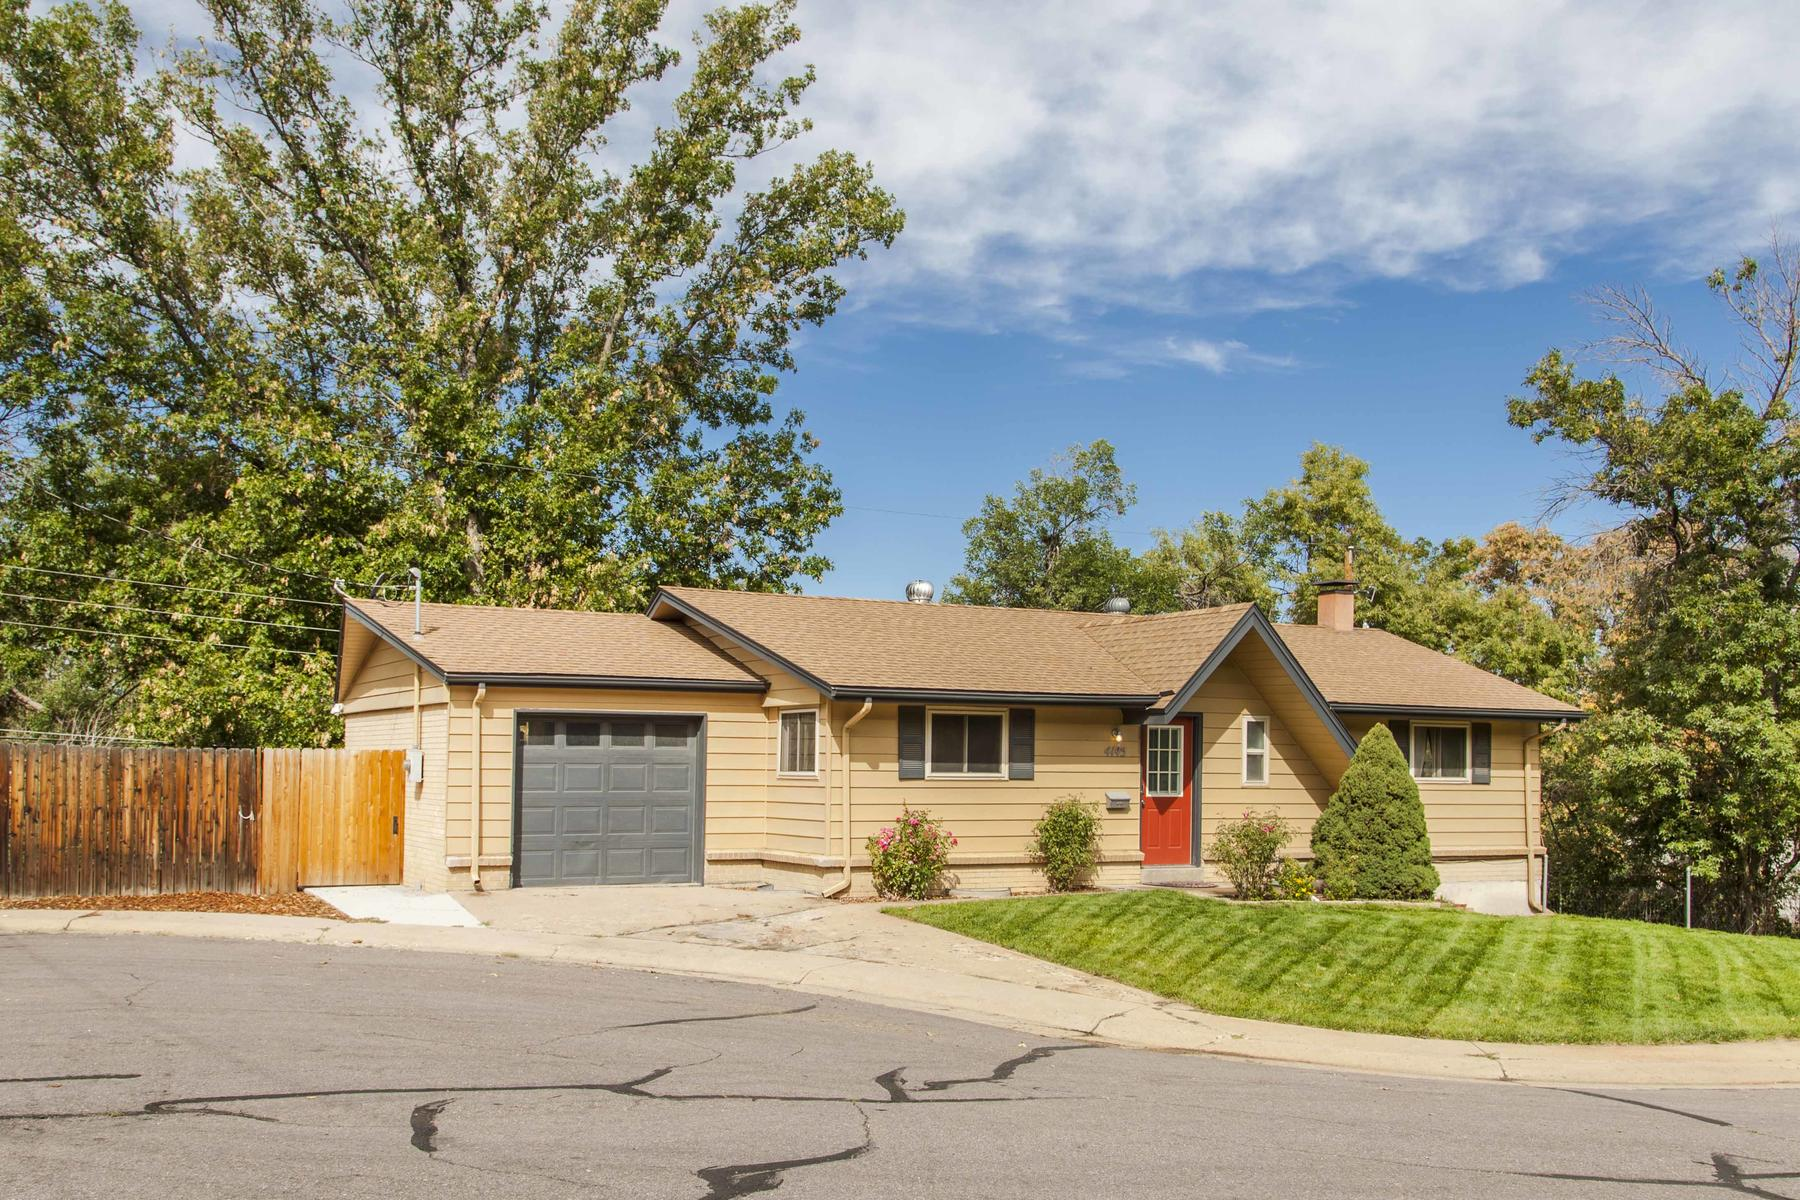 SOLD - Oct 2018 - $435,000